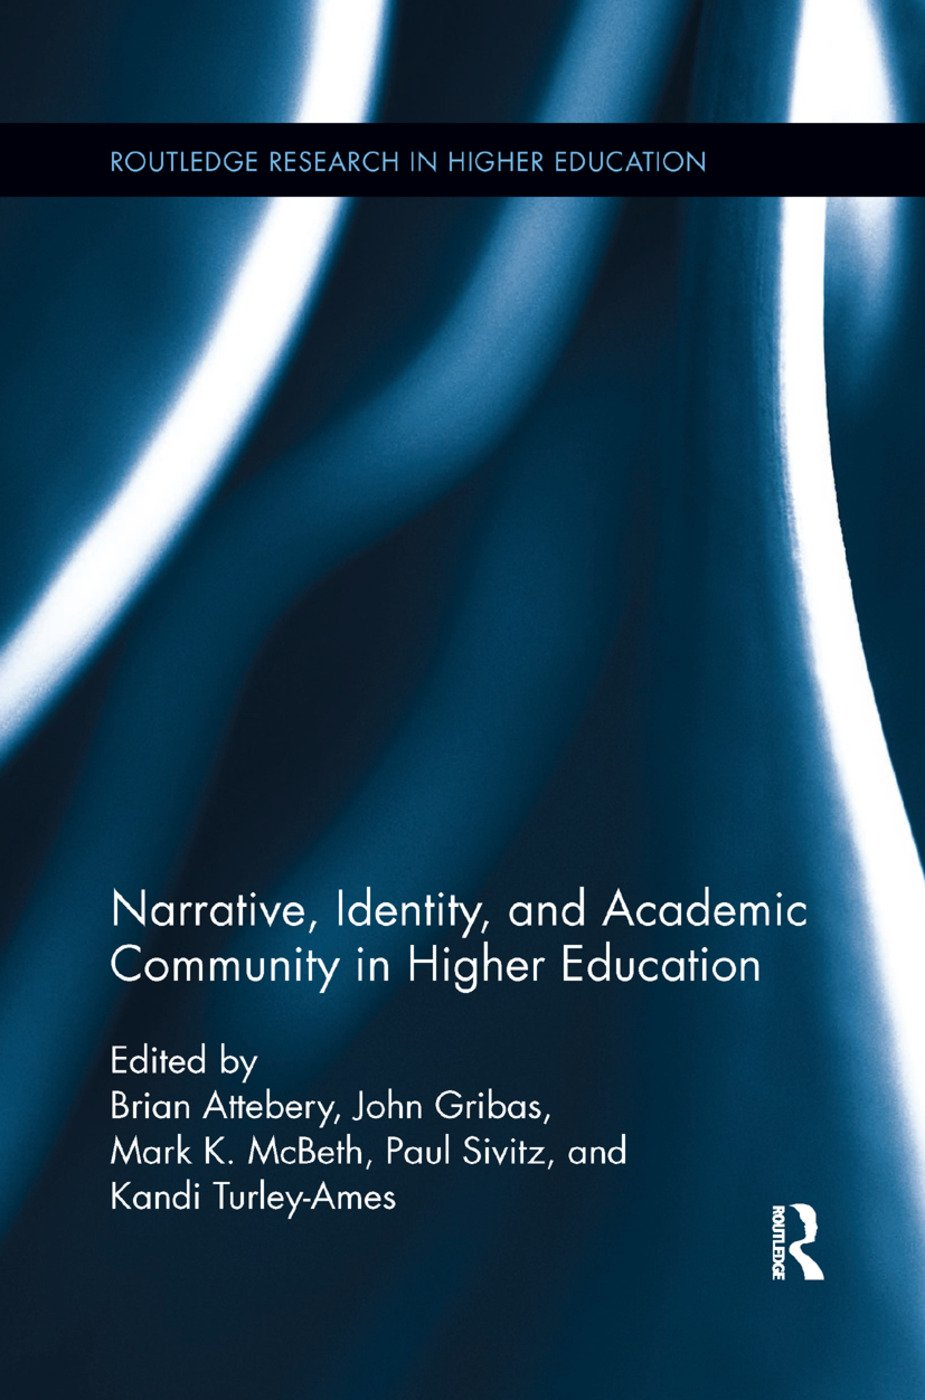 Narrative, Identity, and Academic Community in Higher Education